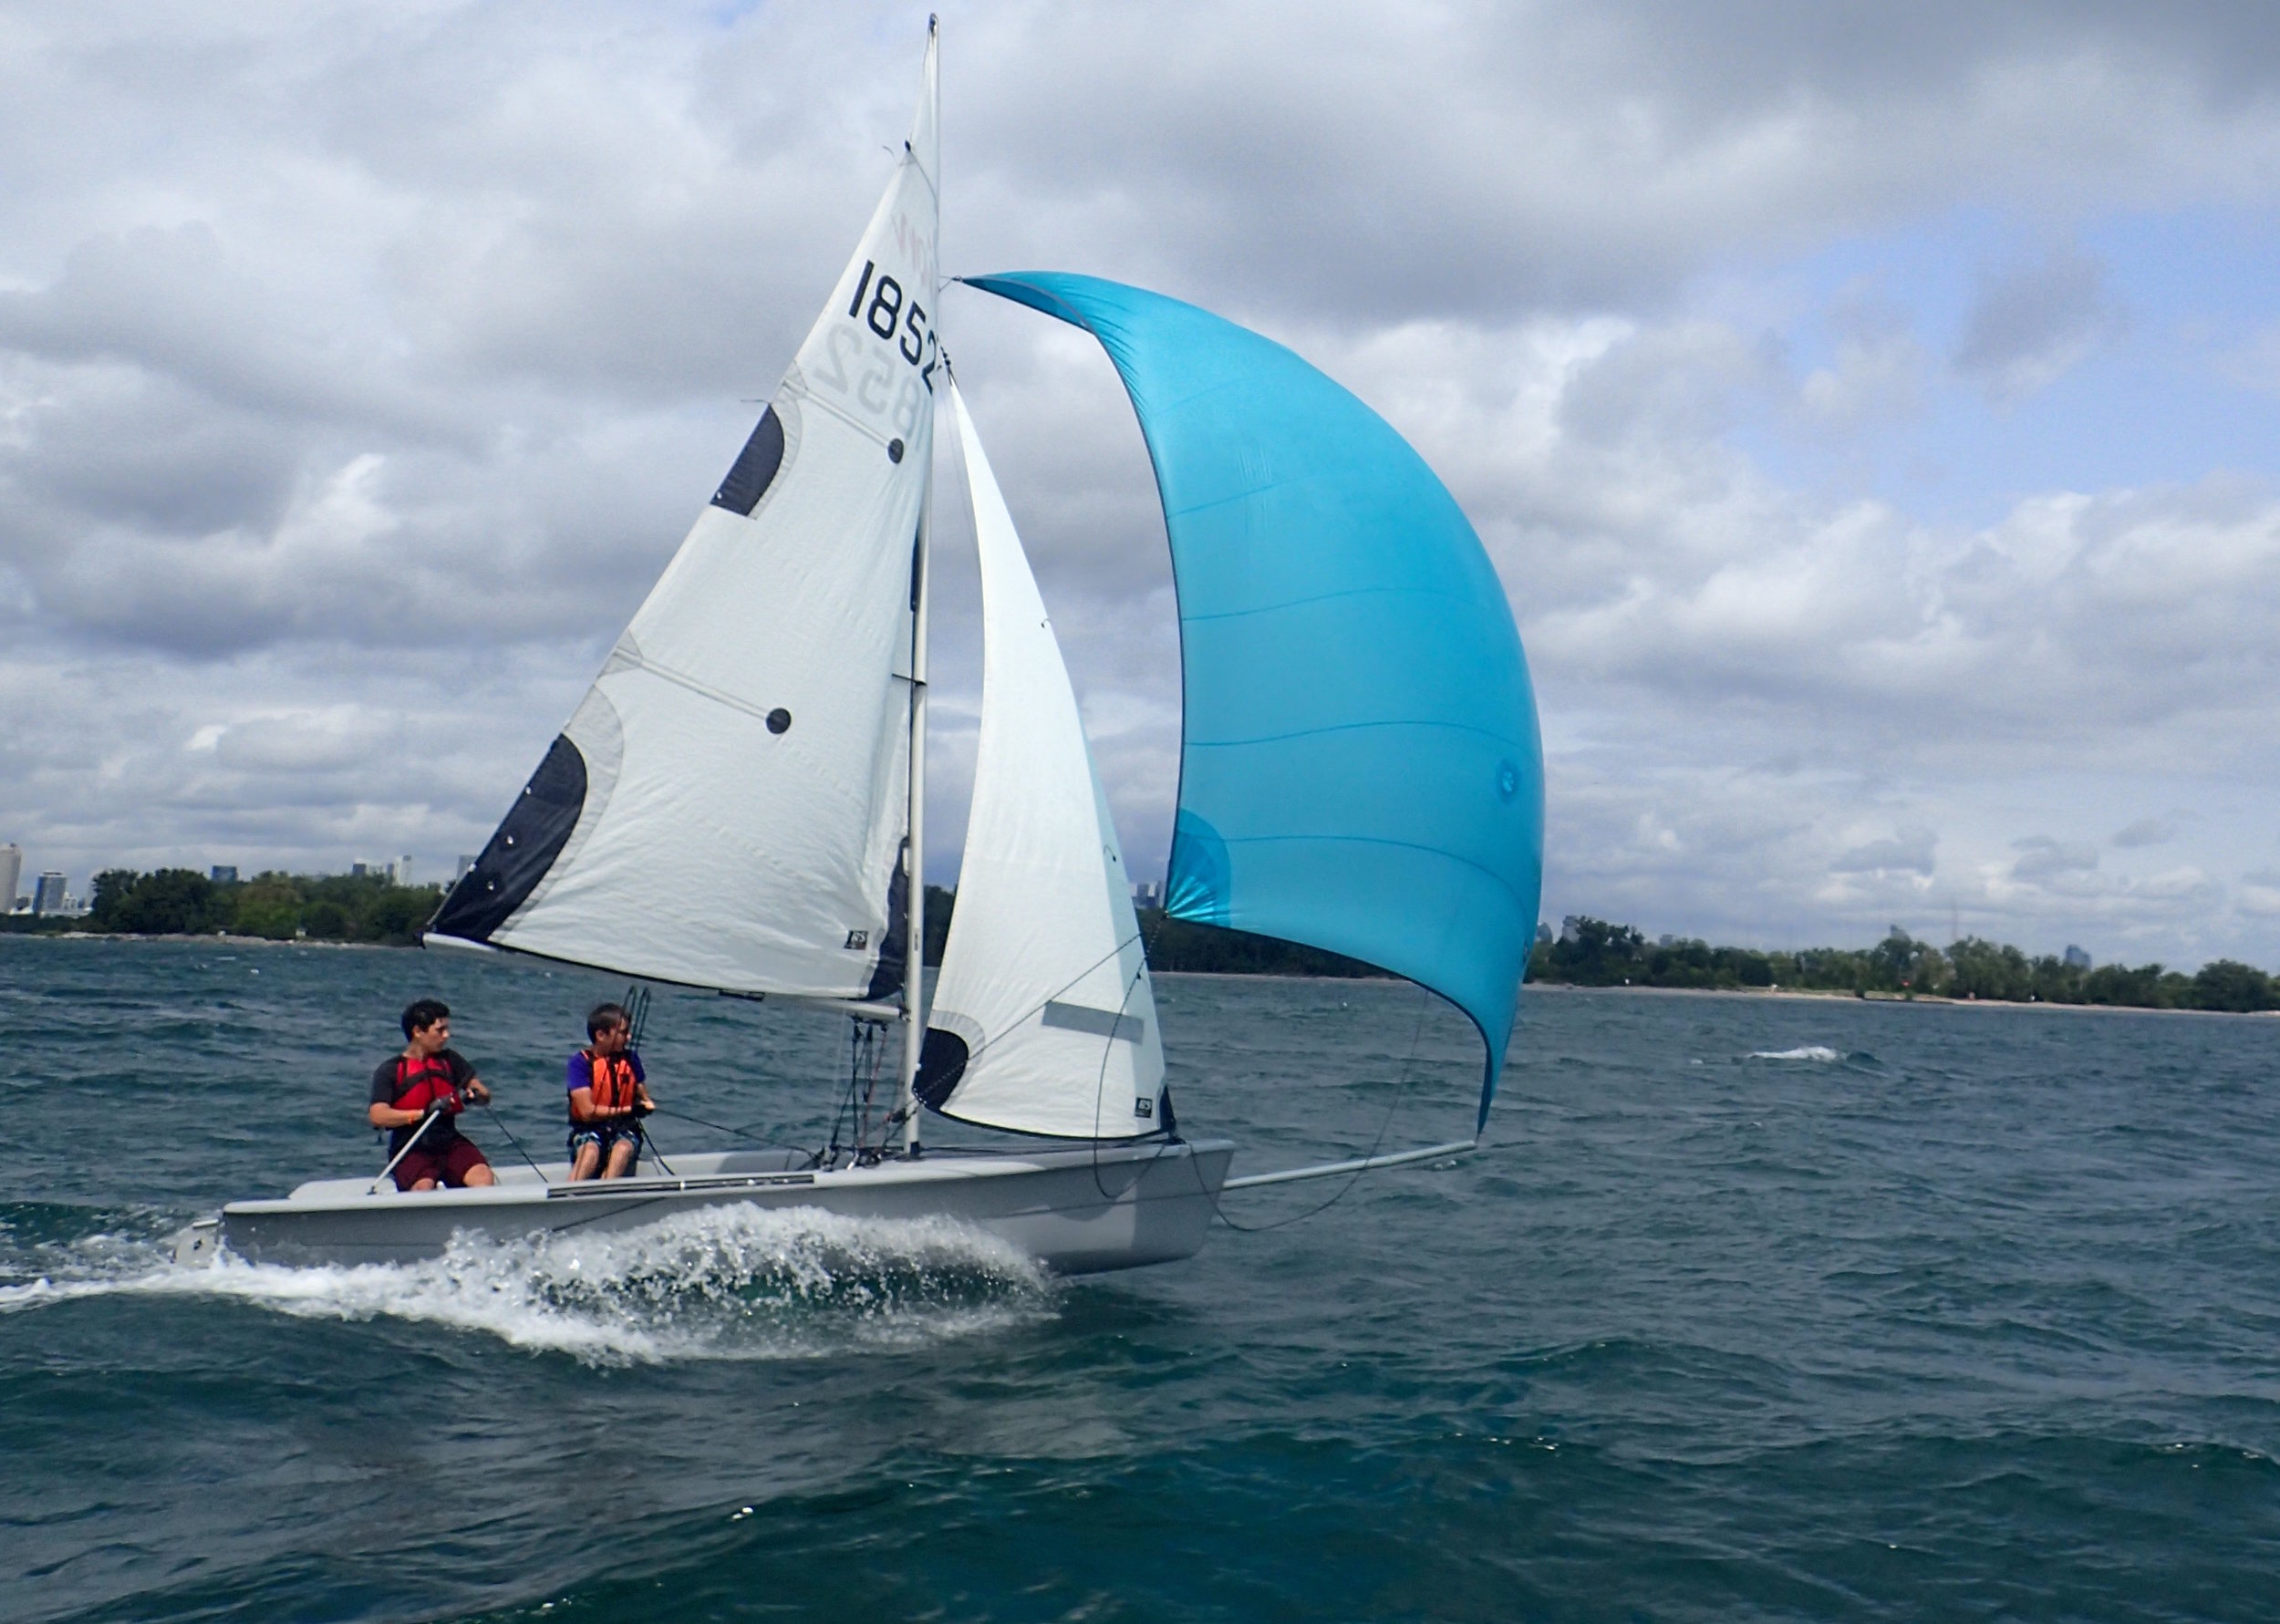 Sailing with a spinnaker - Sailing Fanatics sailing school Toronto